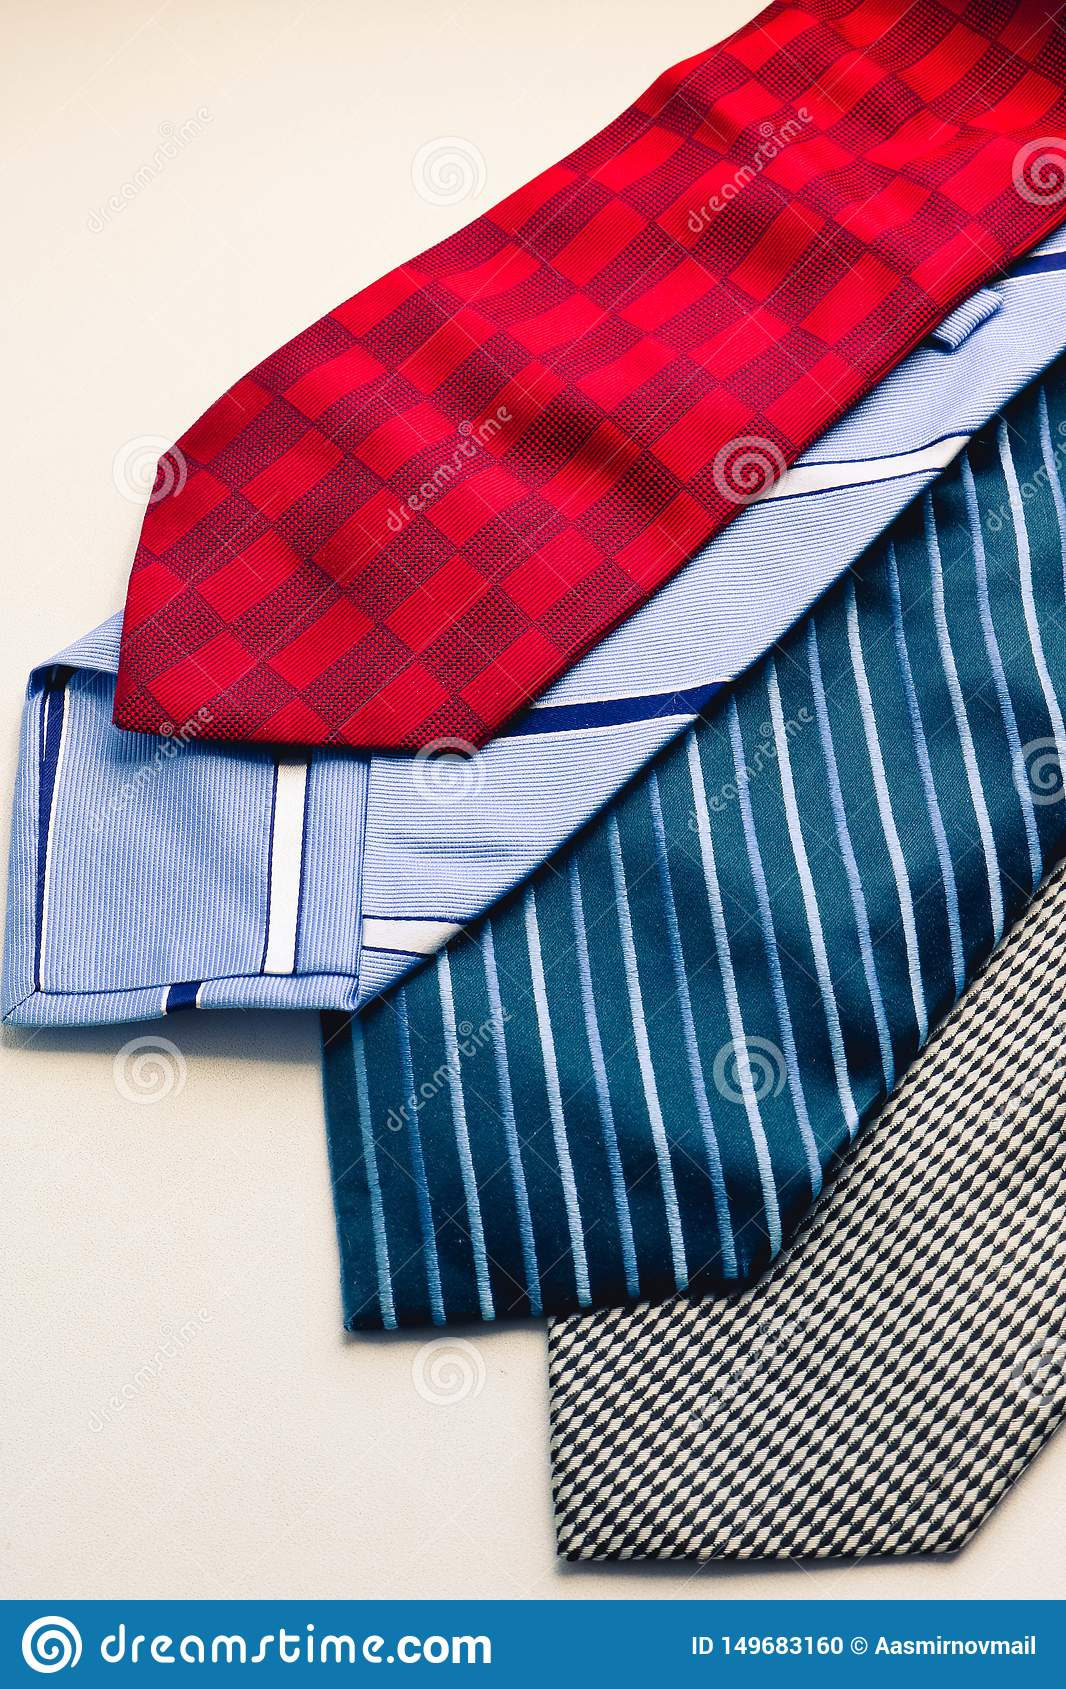 Set of fashion multicolored man`s ties. Red blue gray and striped ties on the white background